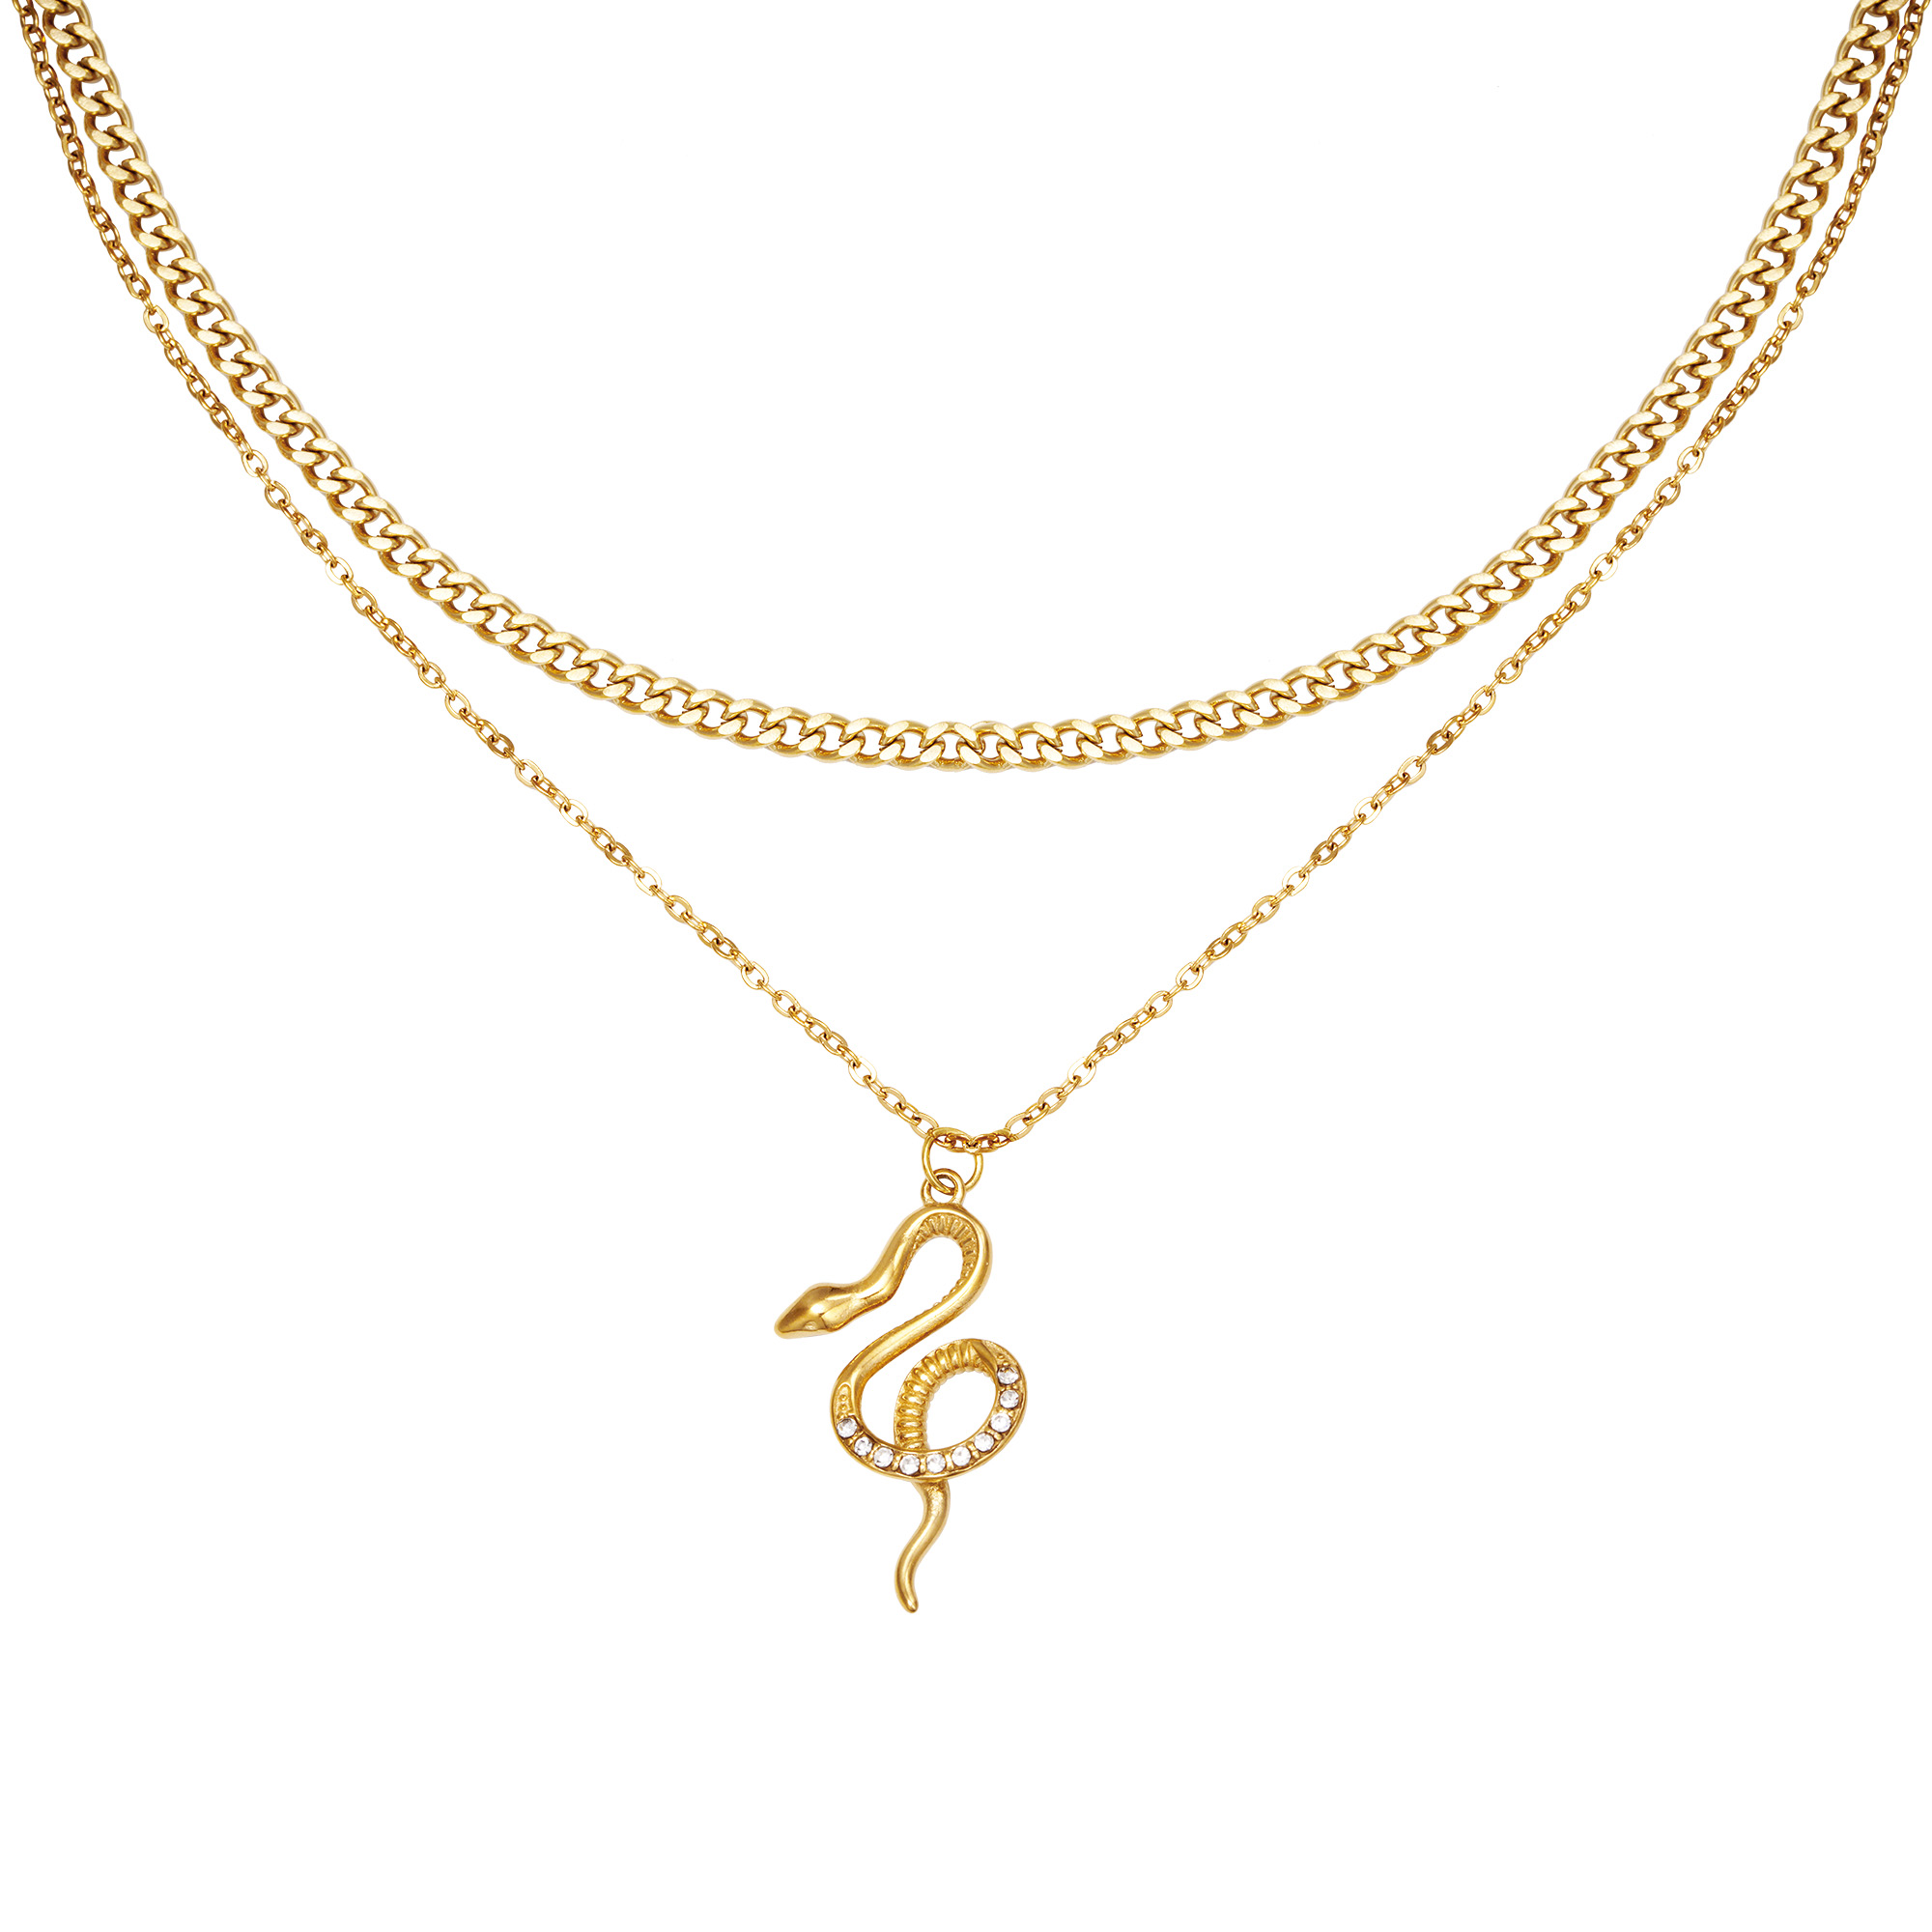 Ketting Chained Snake Goud